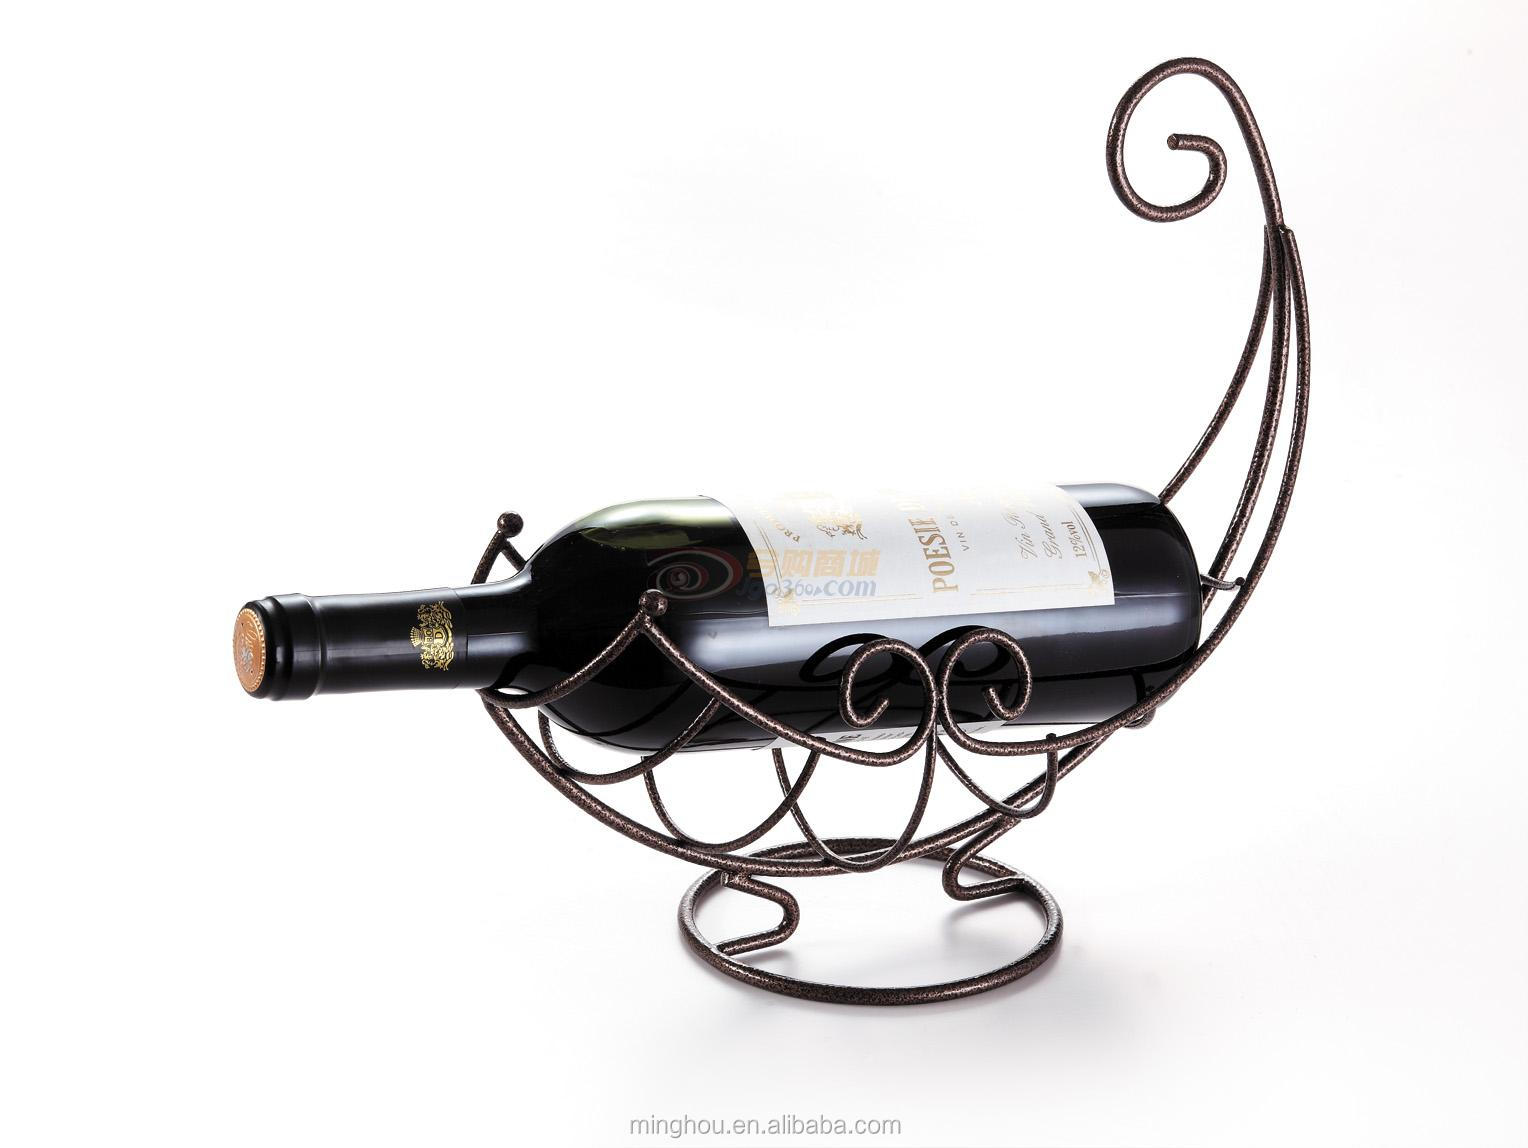 Unique nest metal wine bottle holder boat shape wine rack buy metal crafts wine bottle holder - Wire wine bottle carrier ...